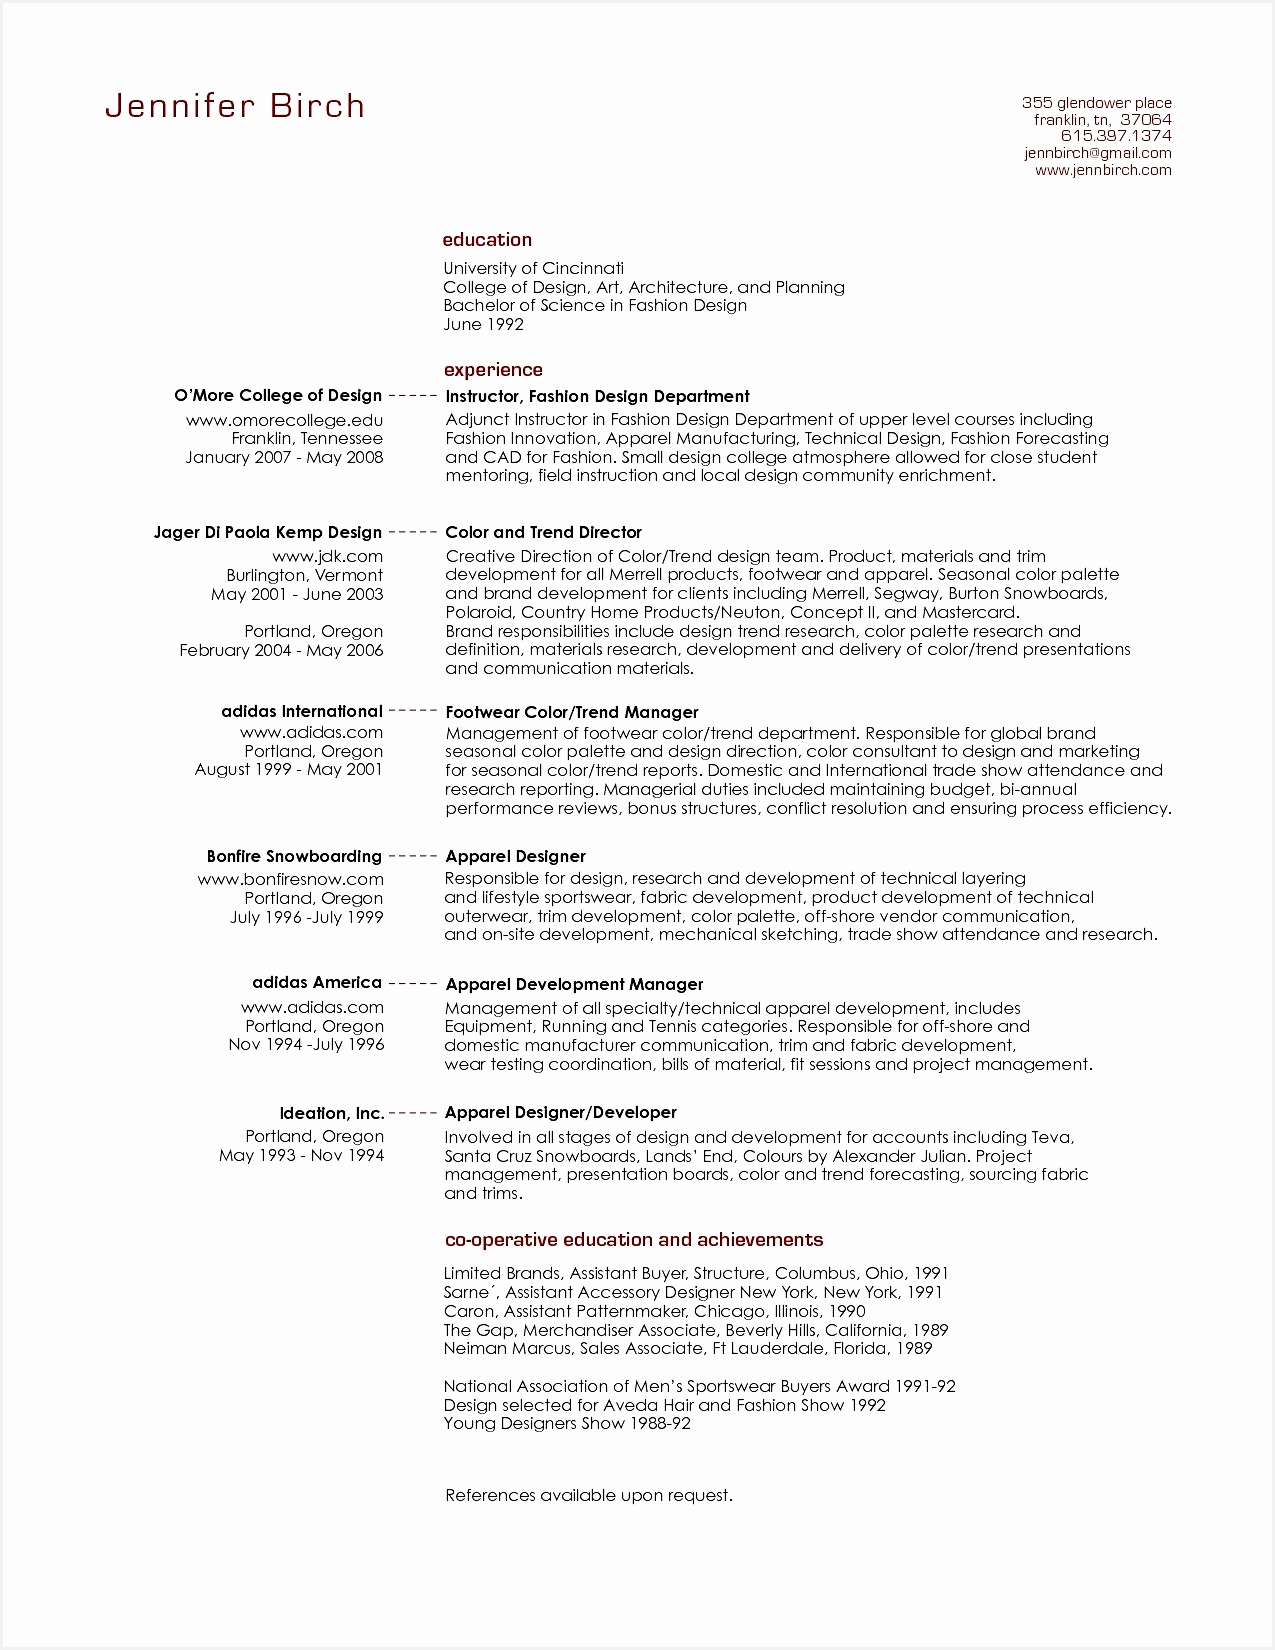 Executive Resume Examples Awesome Professional Resume format16501275